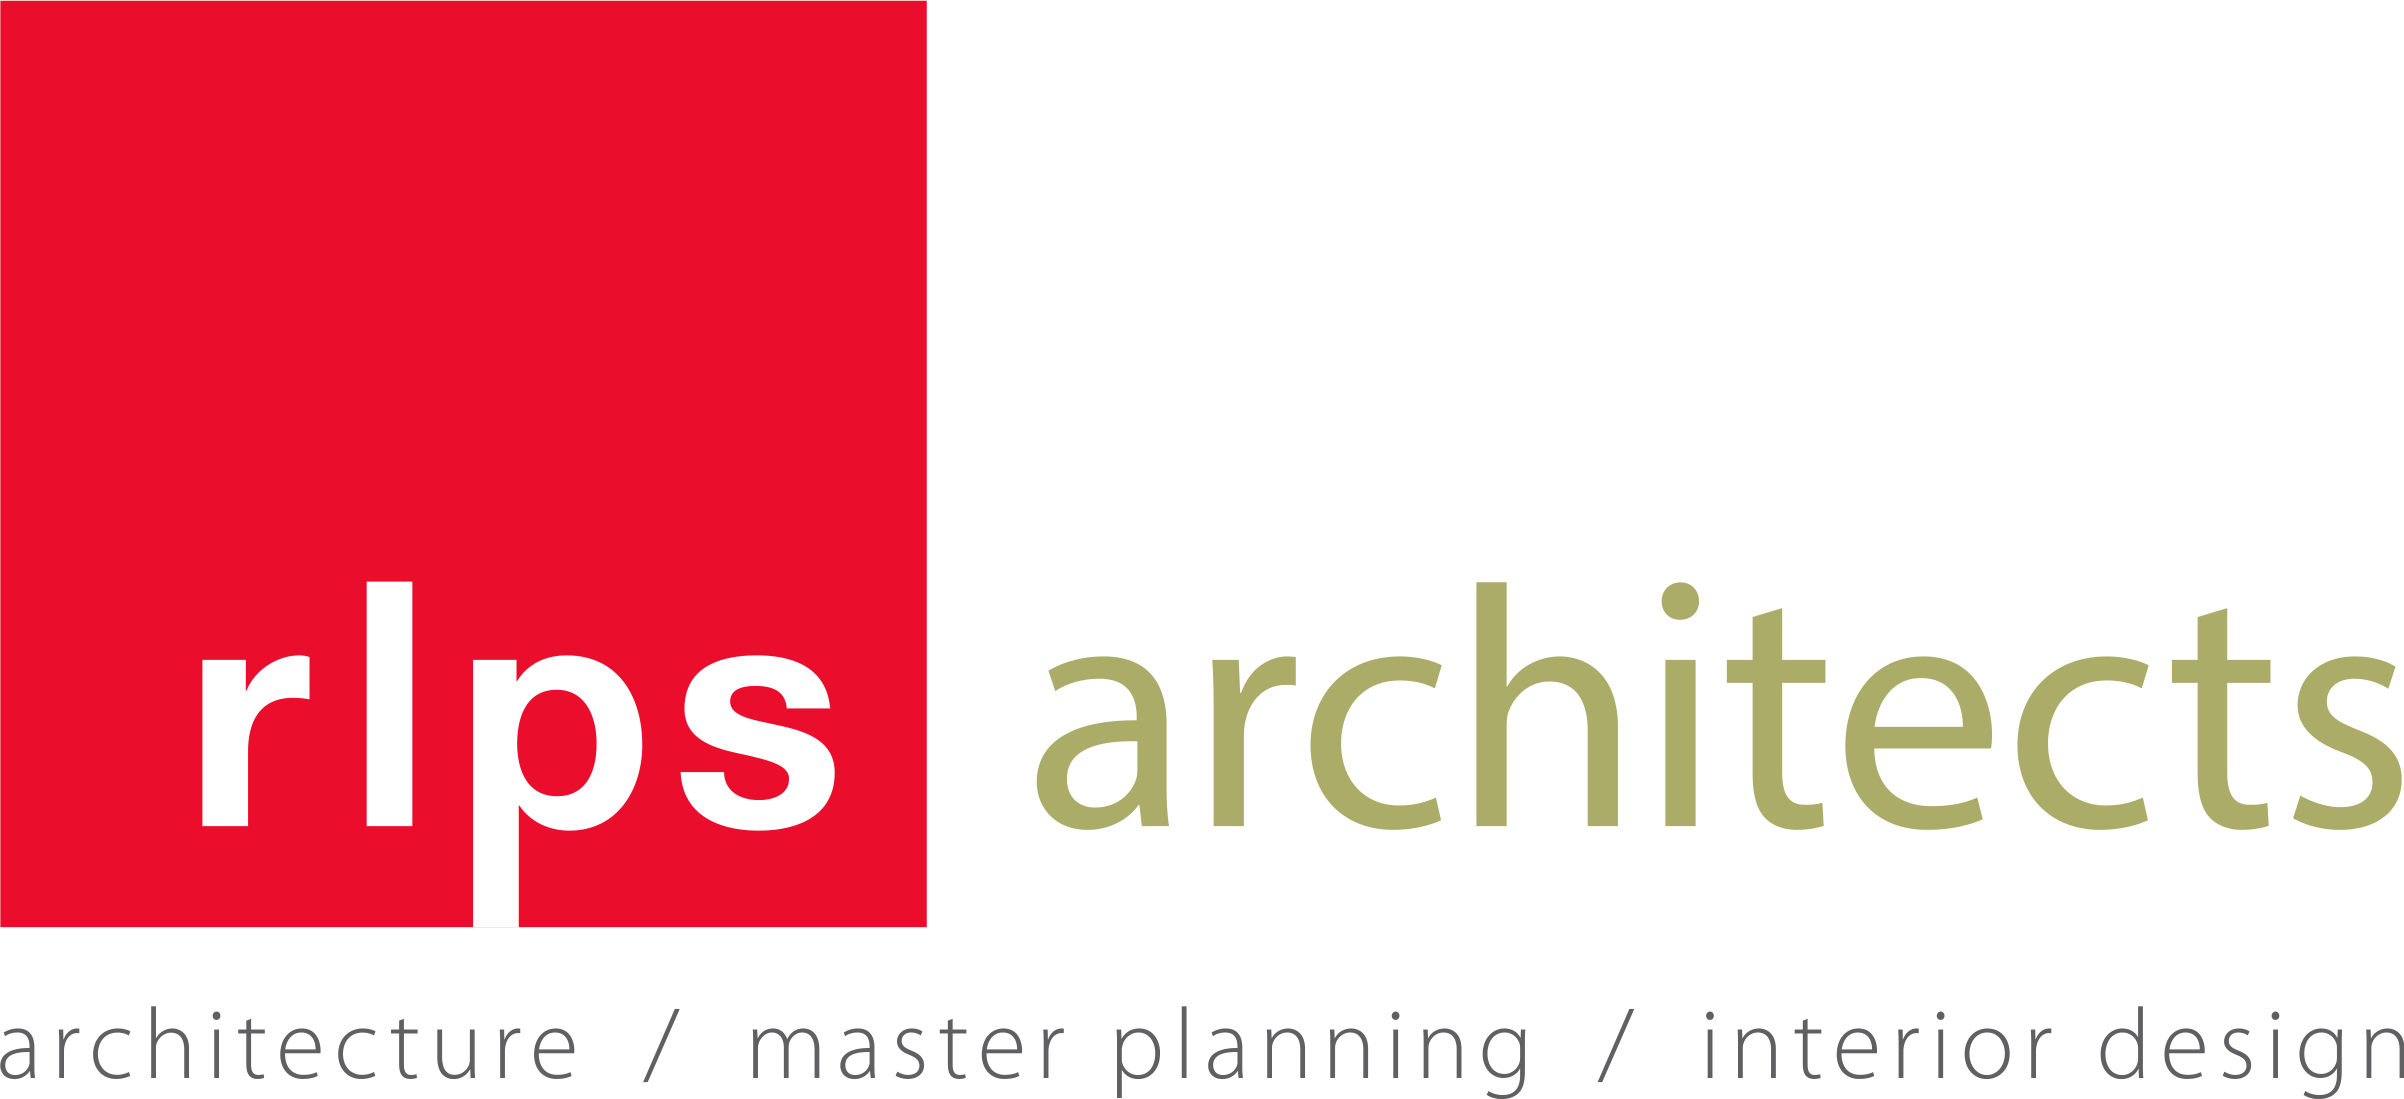 RLPS Architects logo